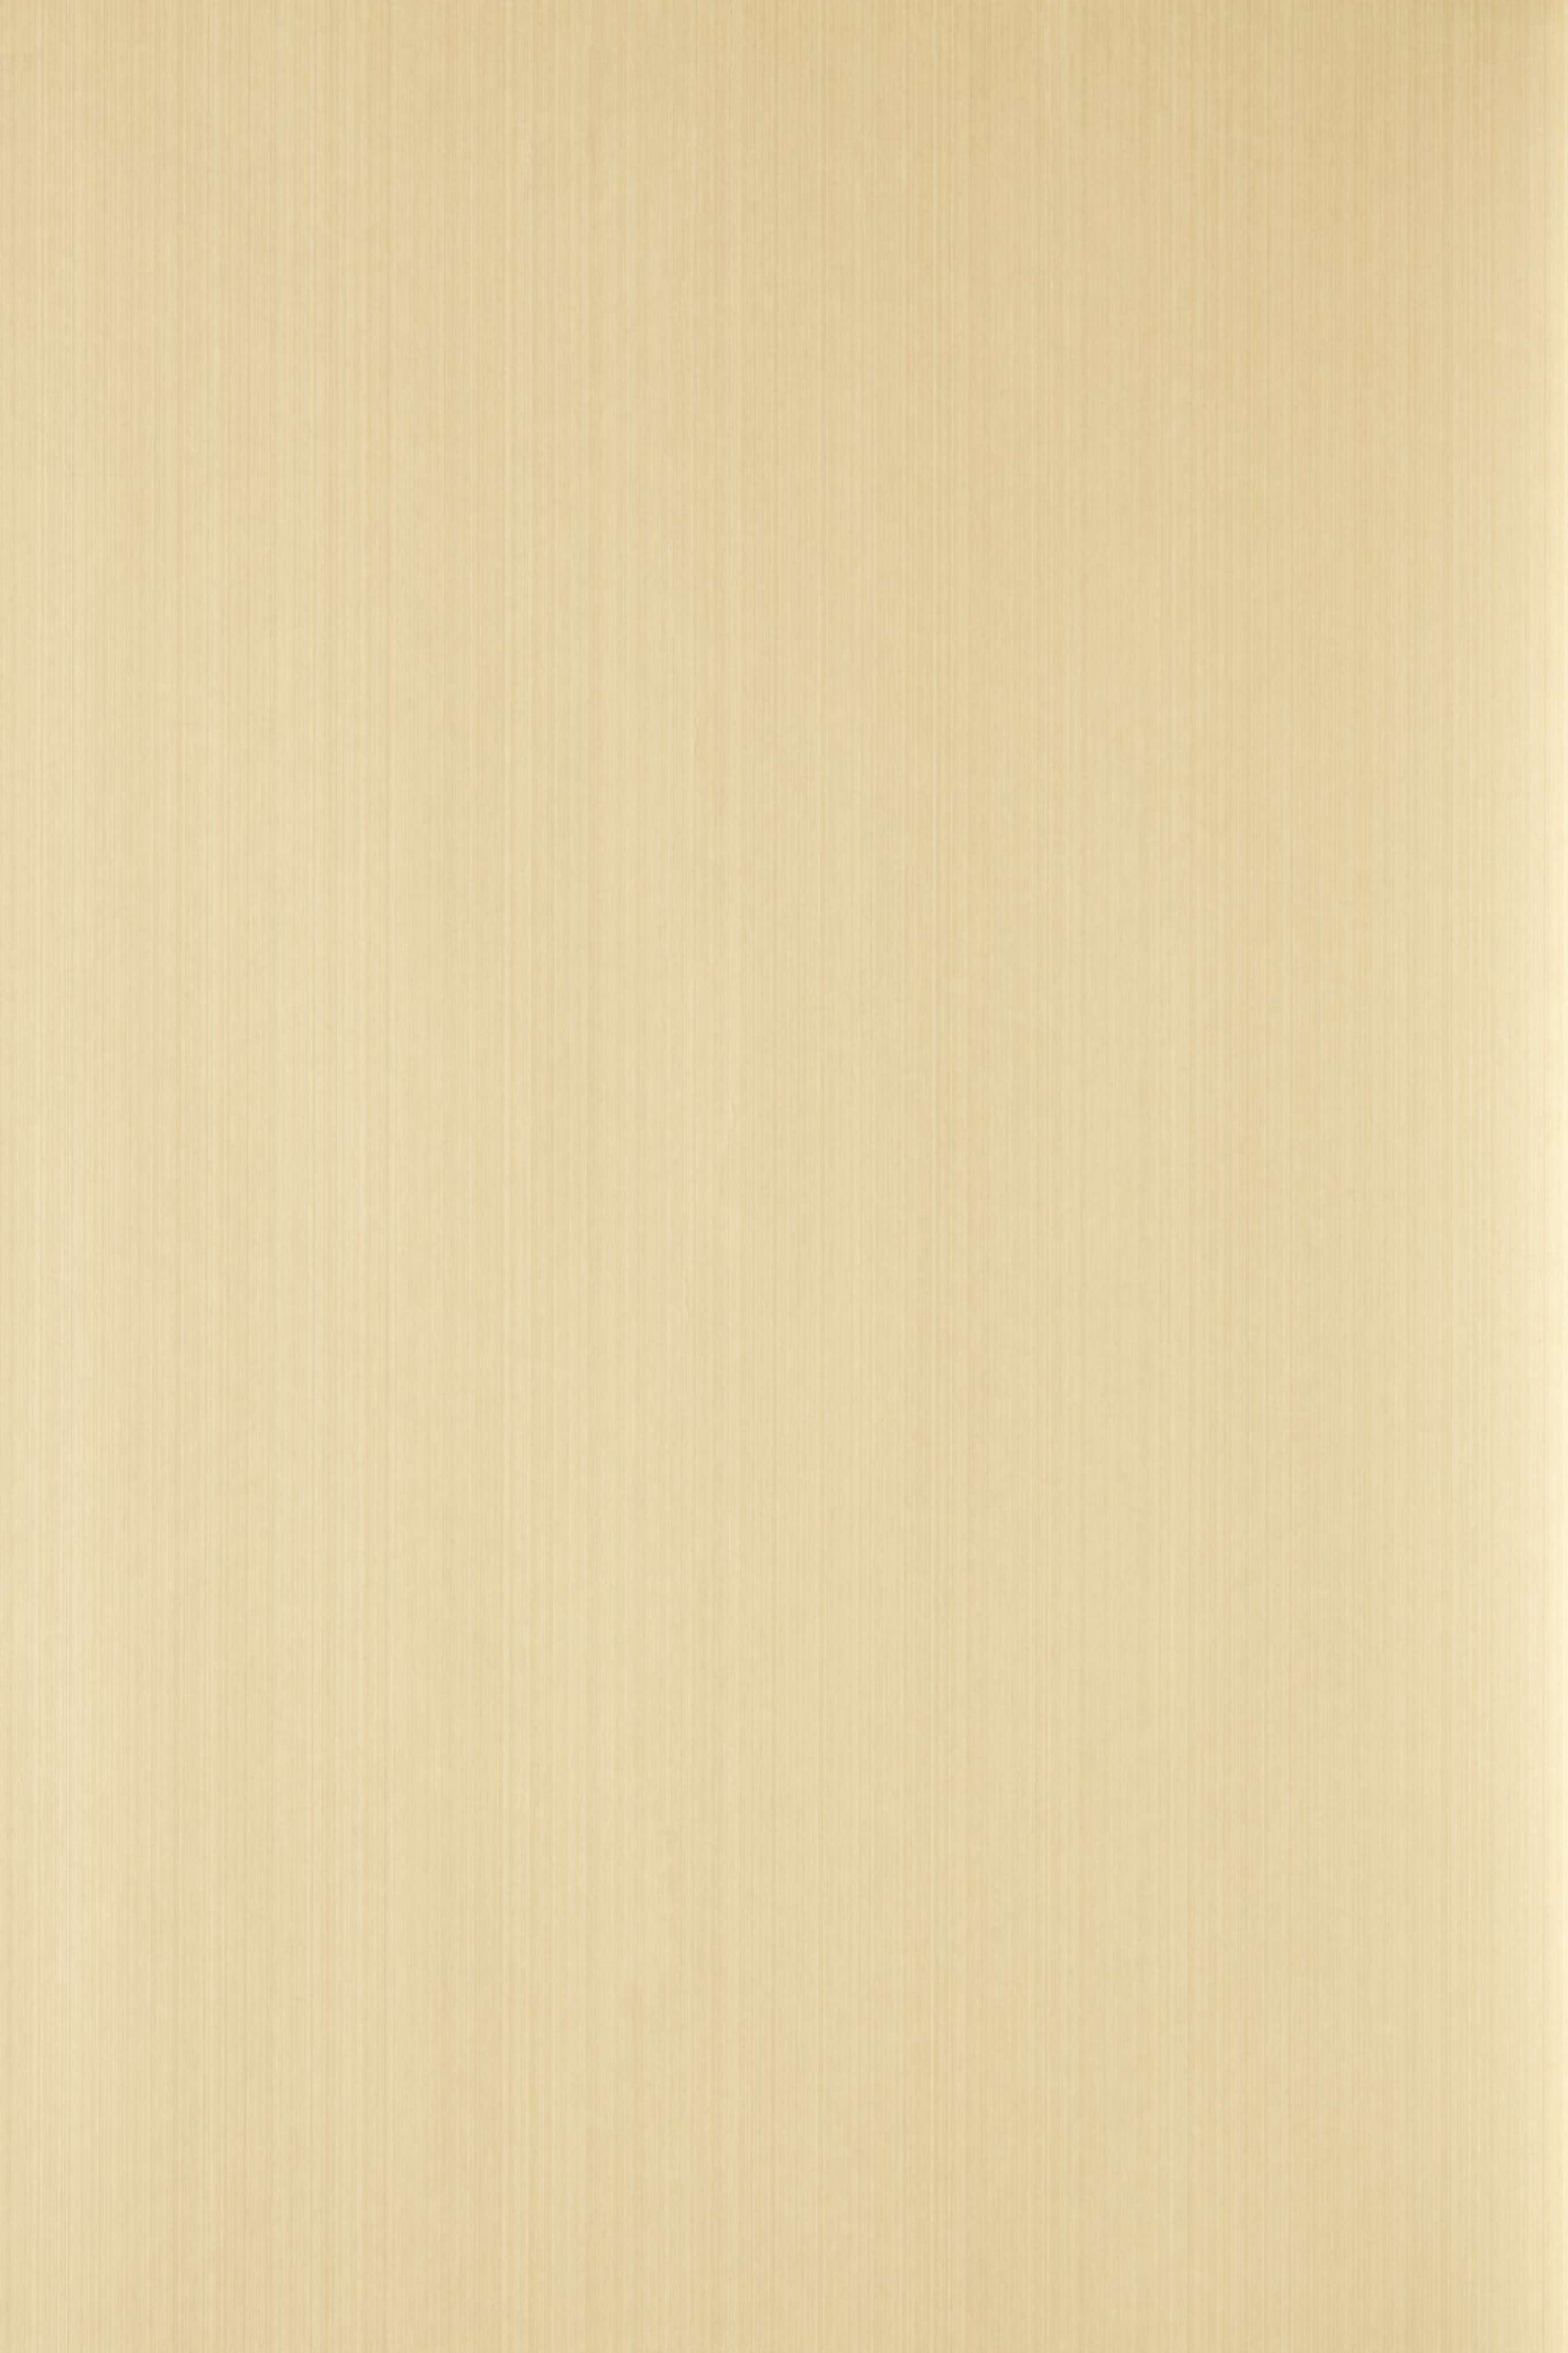 Farrow & Ball Drag DR 1208